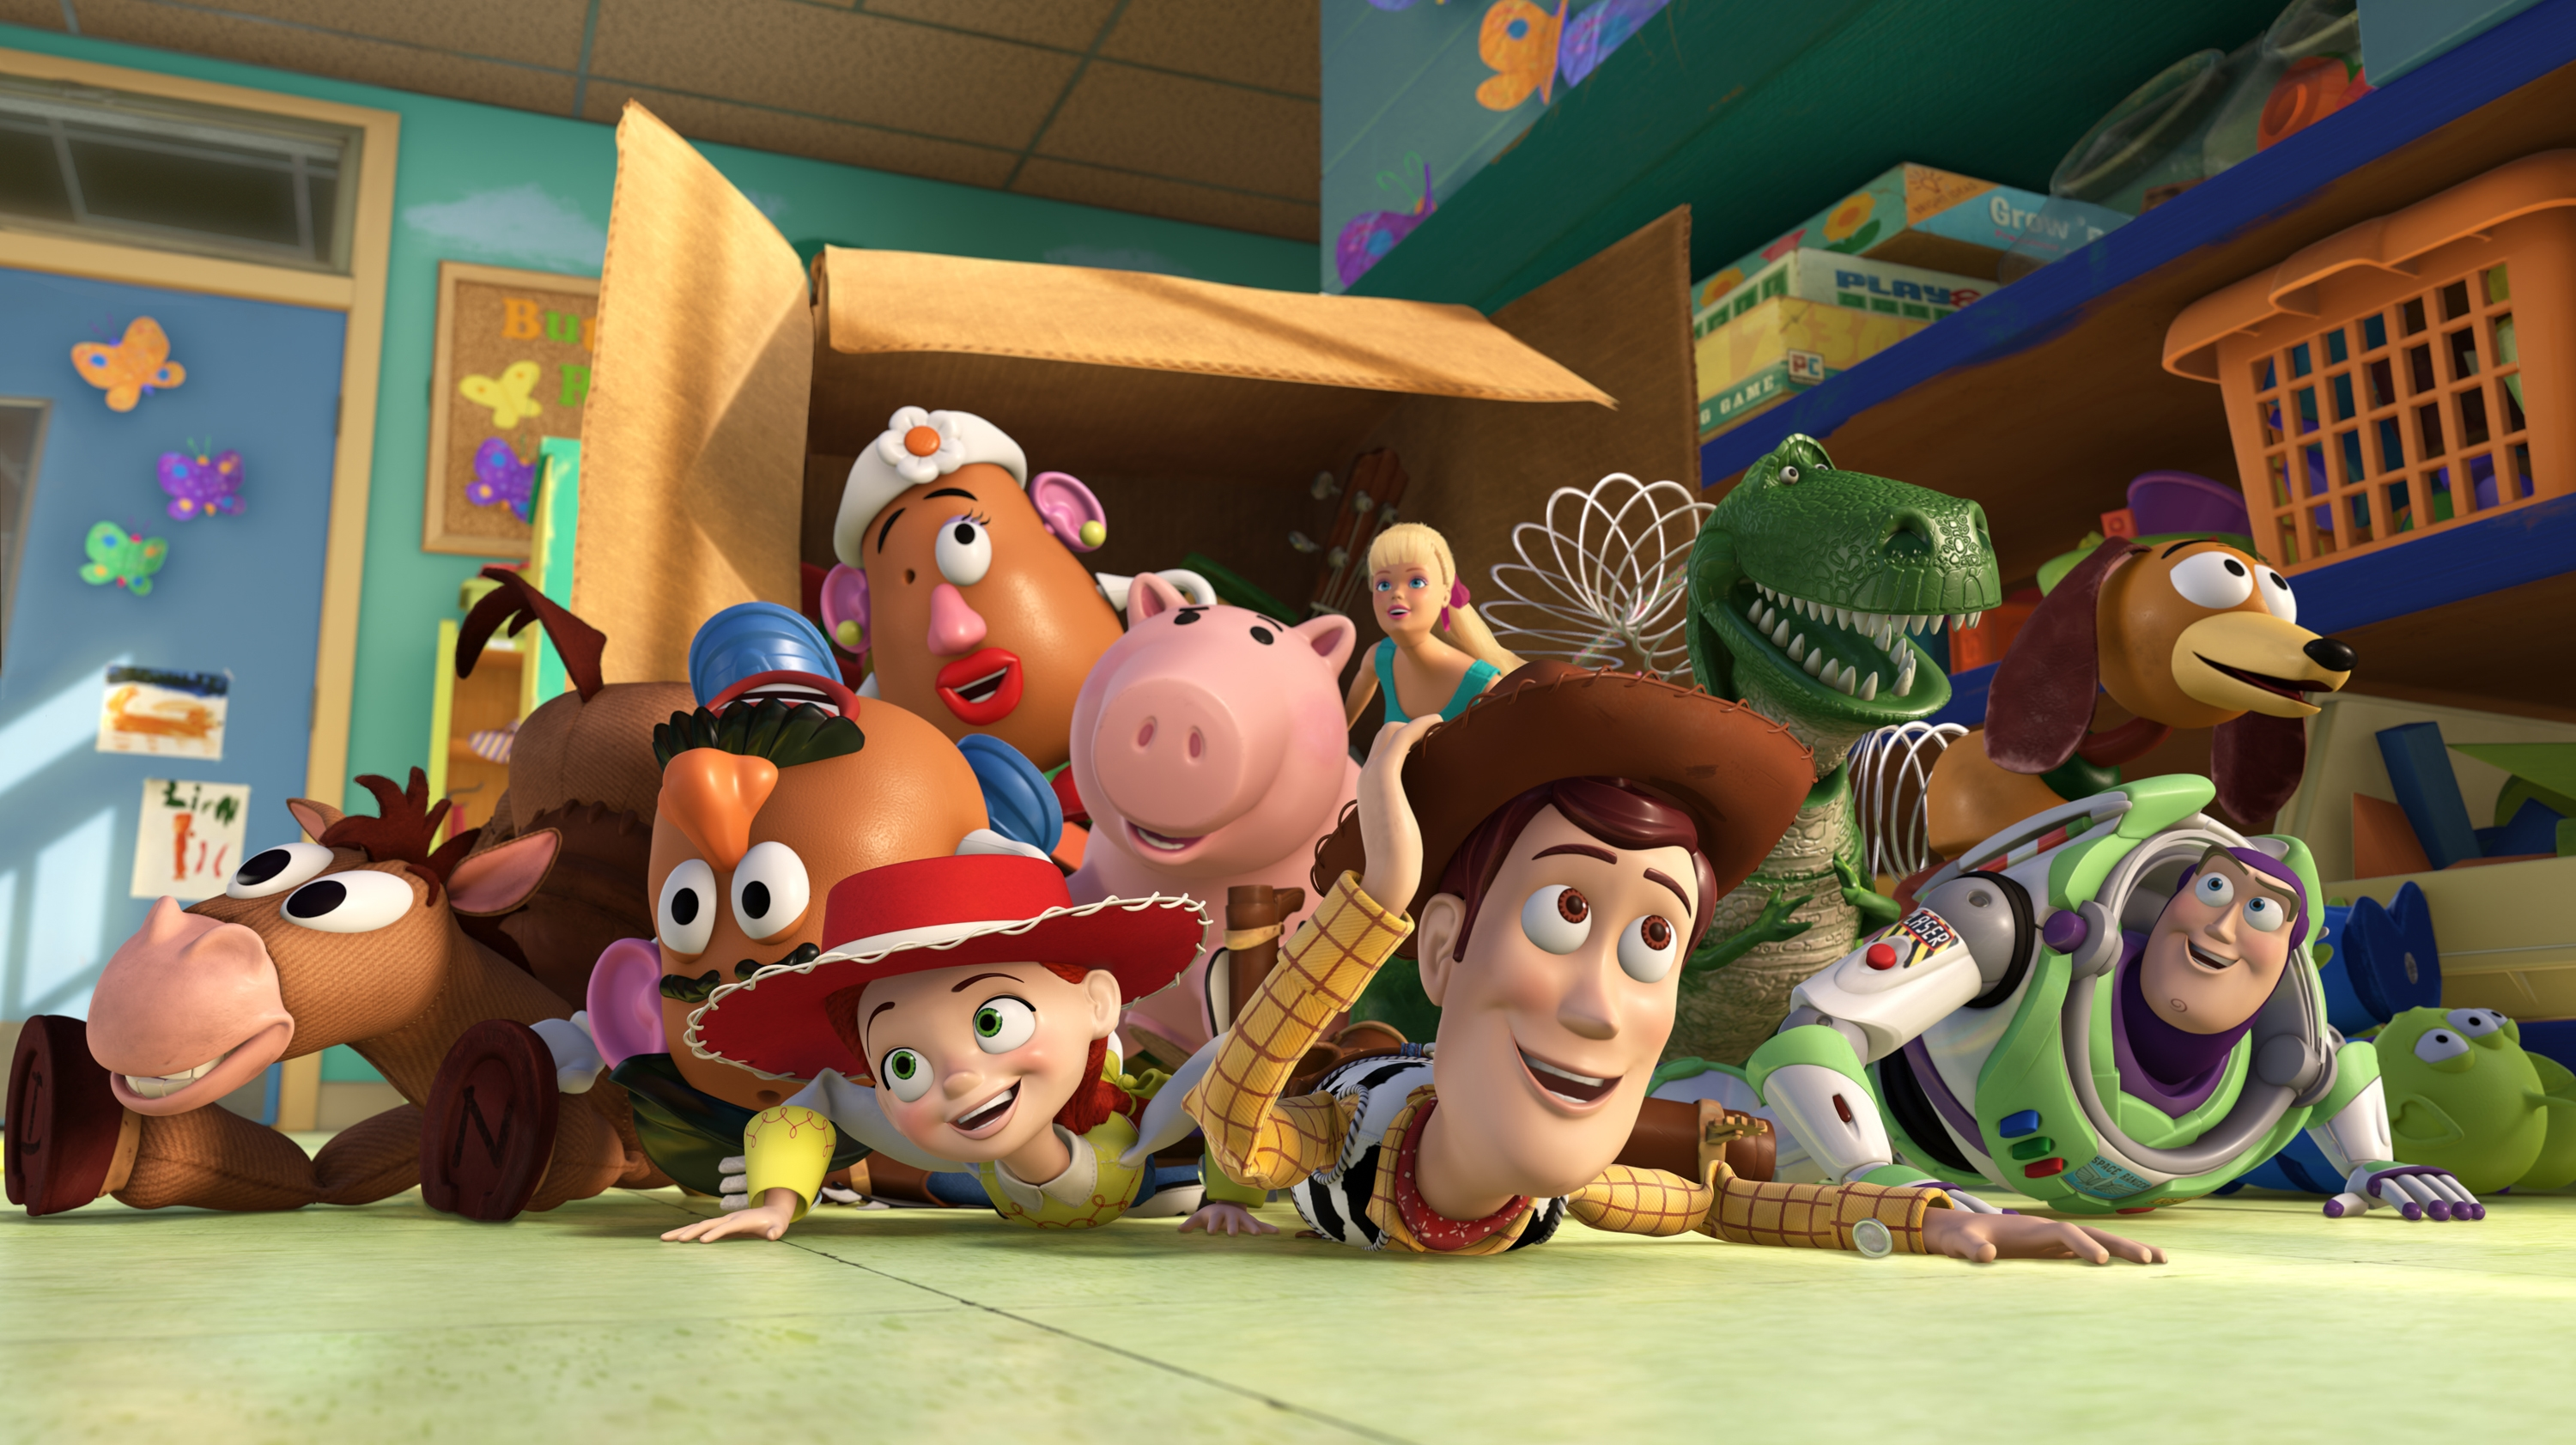 toystory 1 2 3 woody buzz light year hd free desktop background